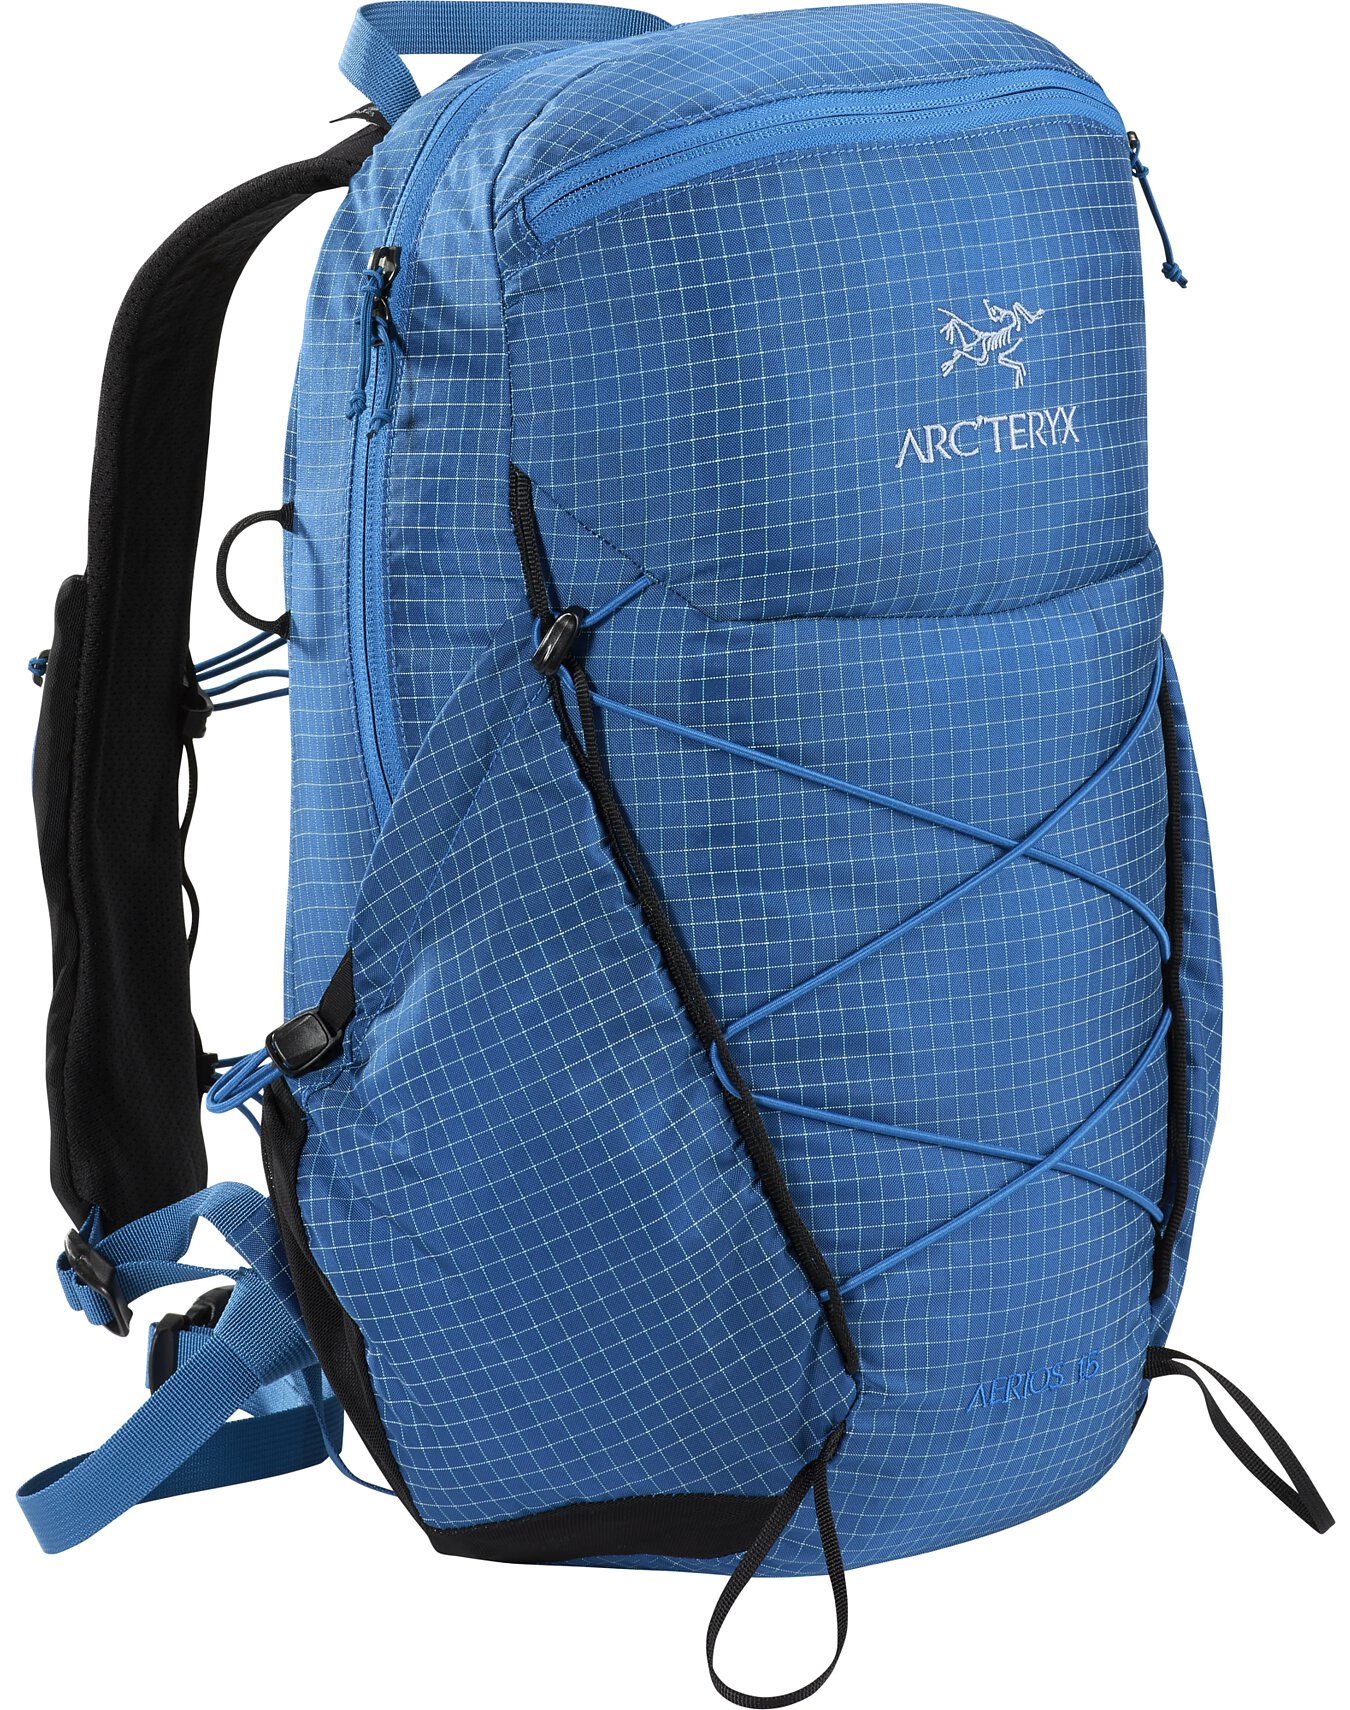 Aerios 15 Backpack Women's